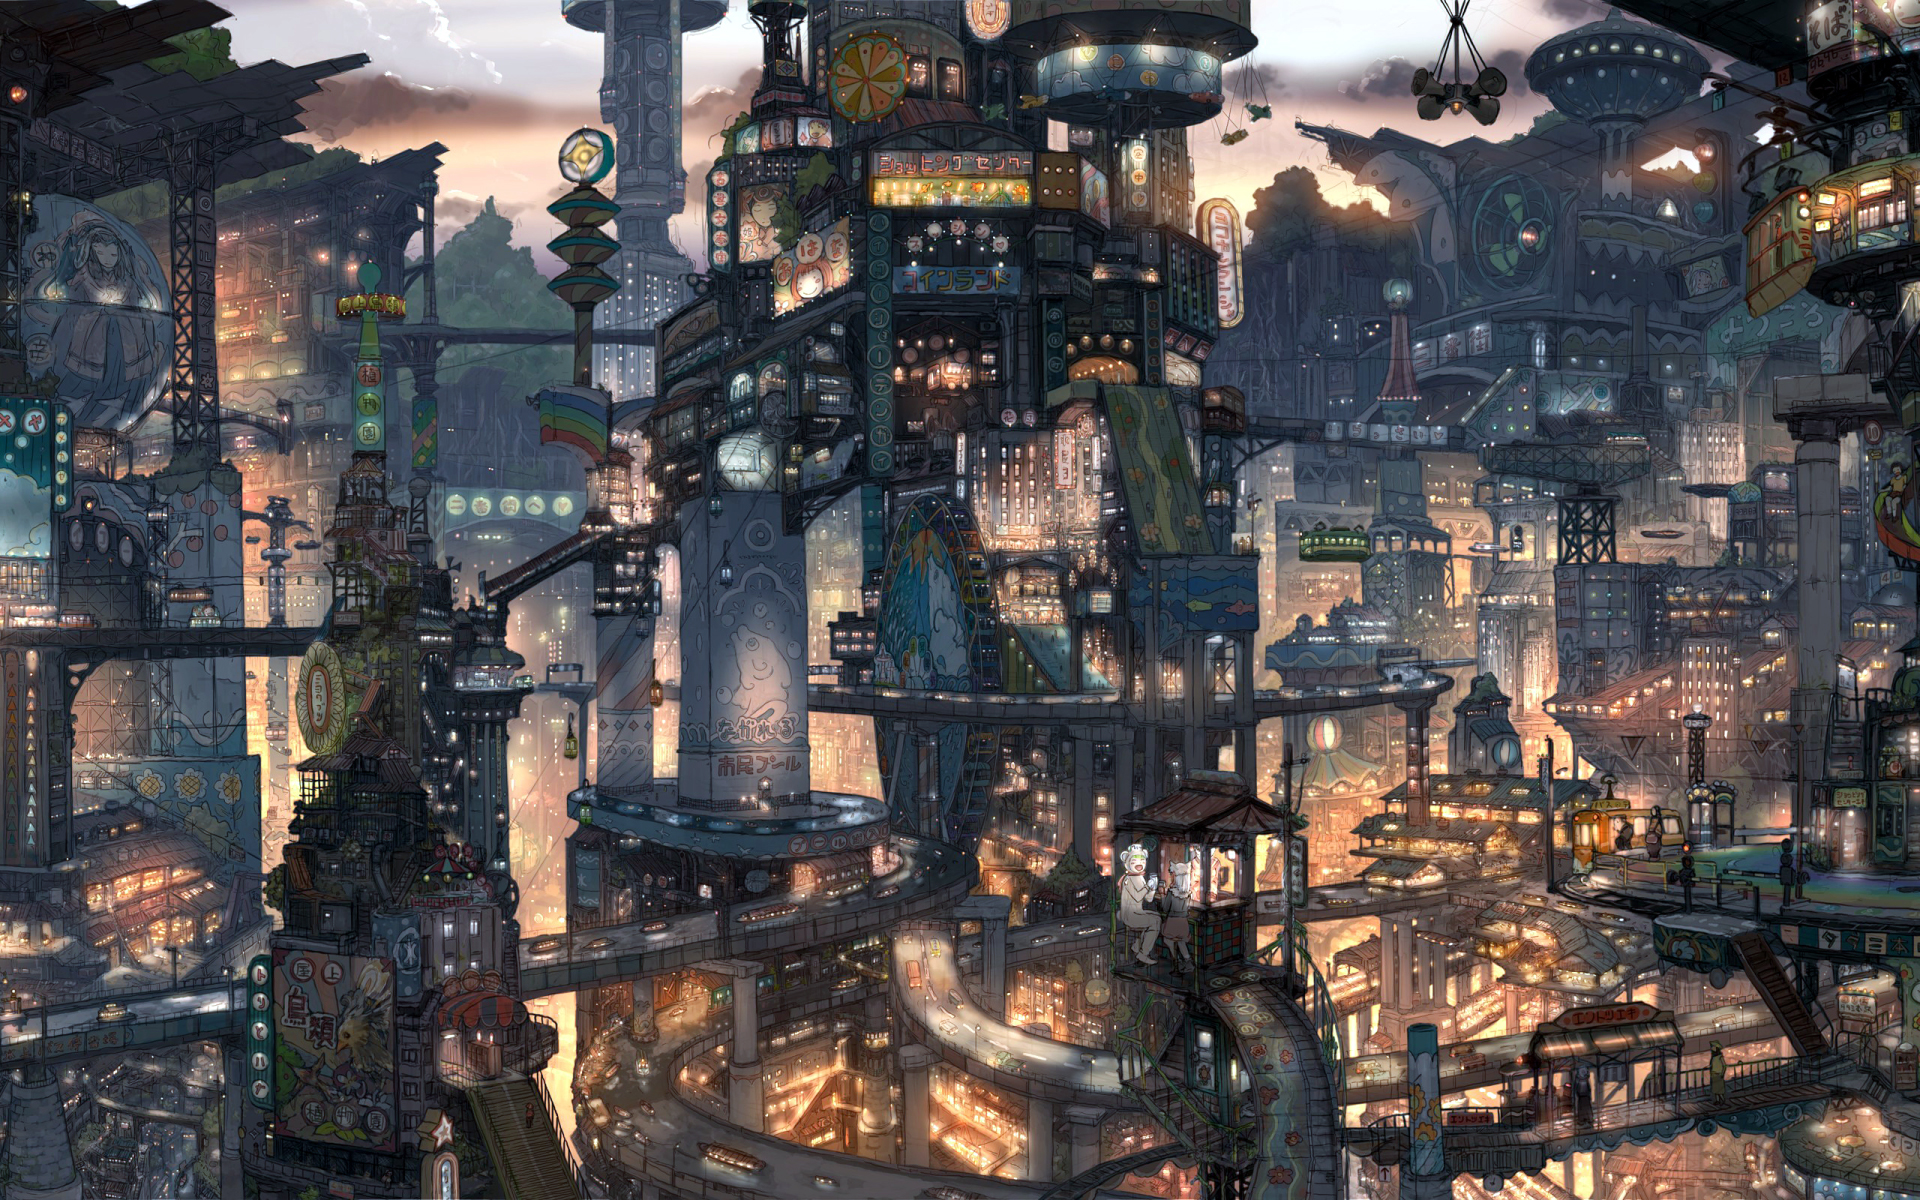 The Kingdisneymarios Images Anime City Scenery Hd Wallpaper And Background Photos